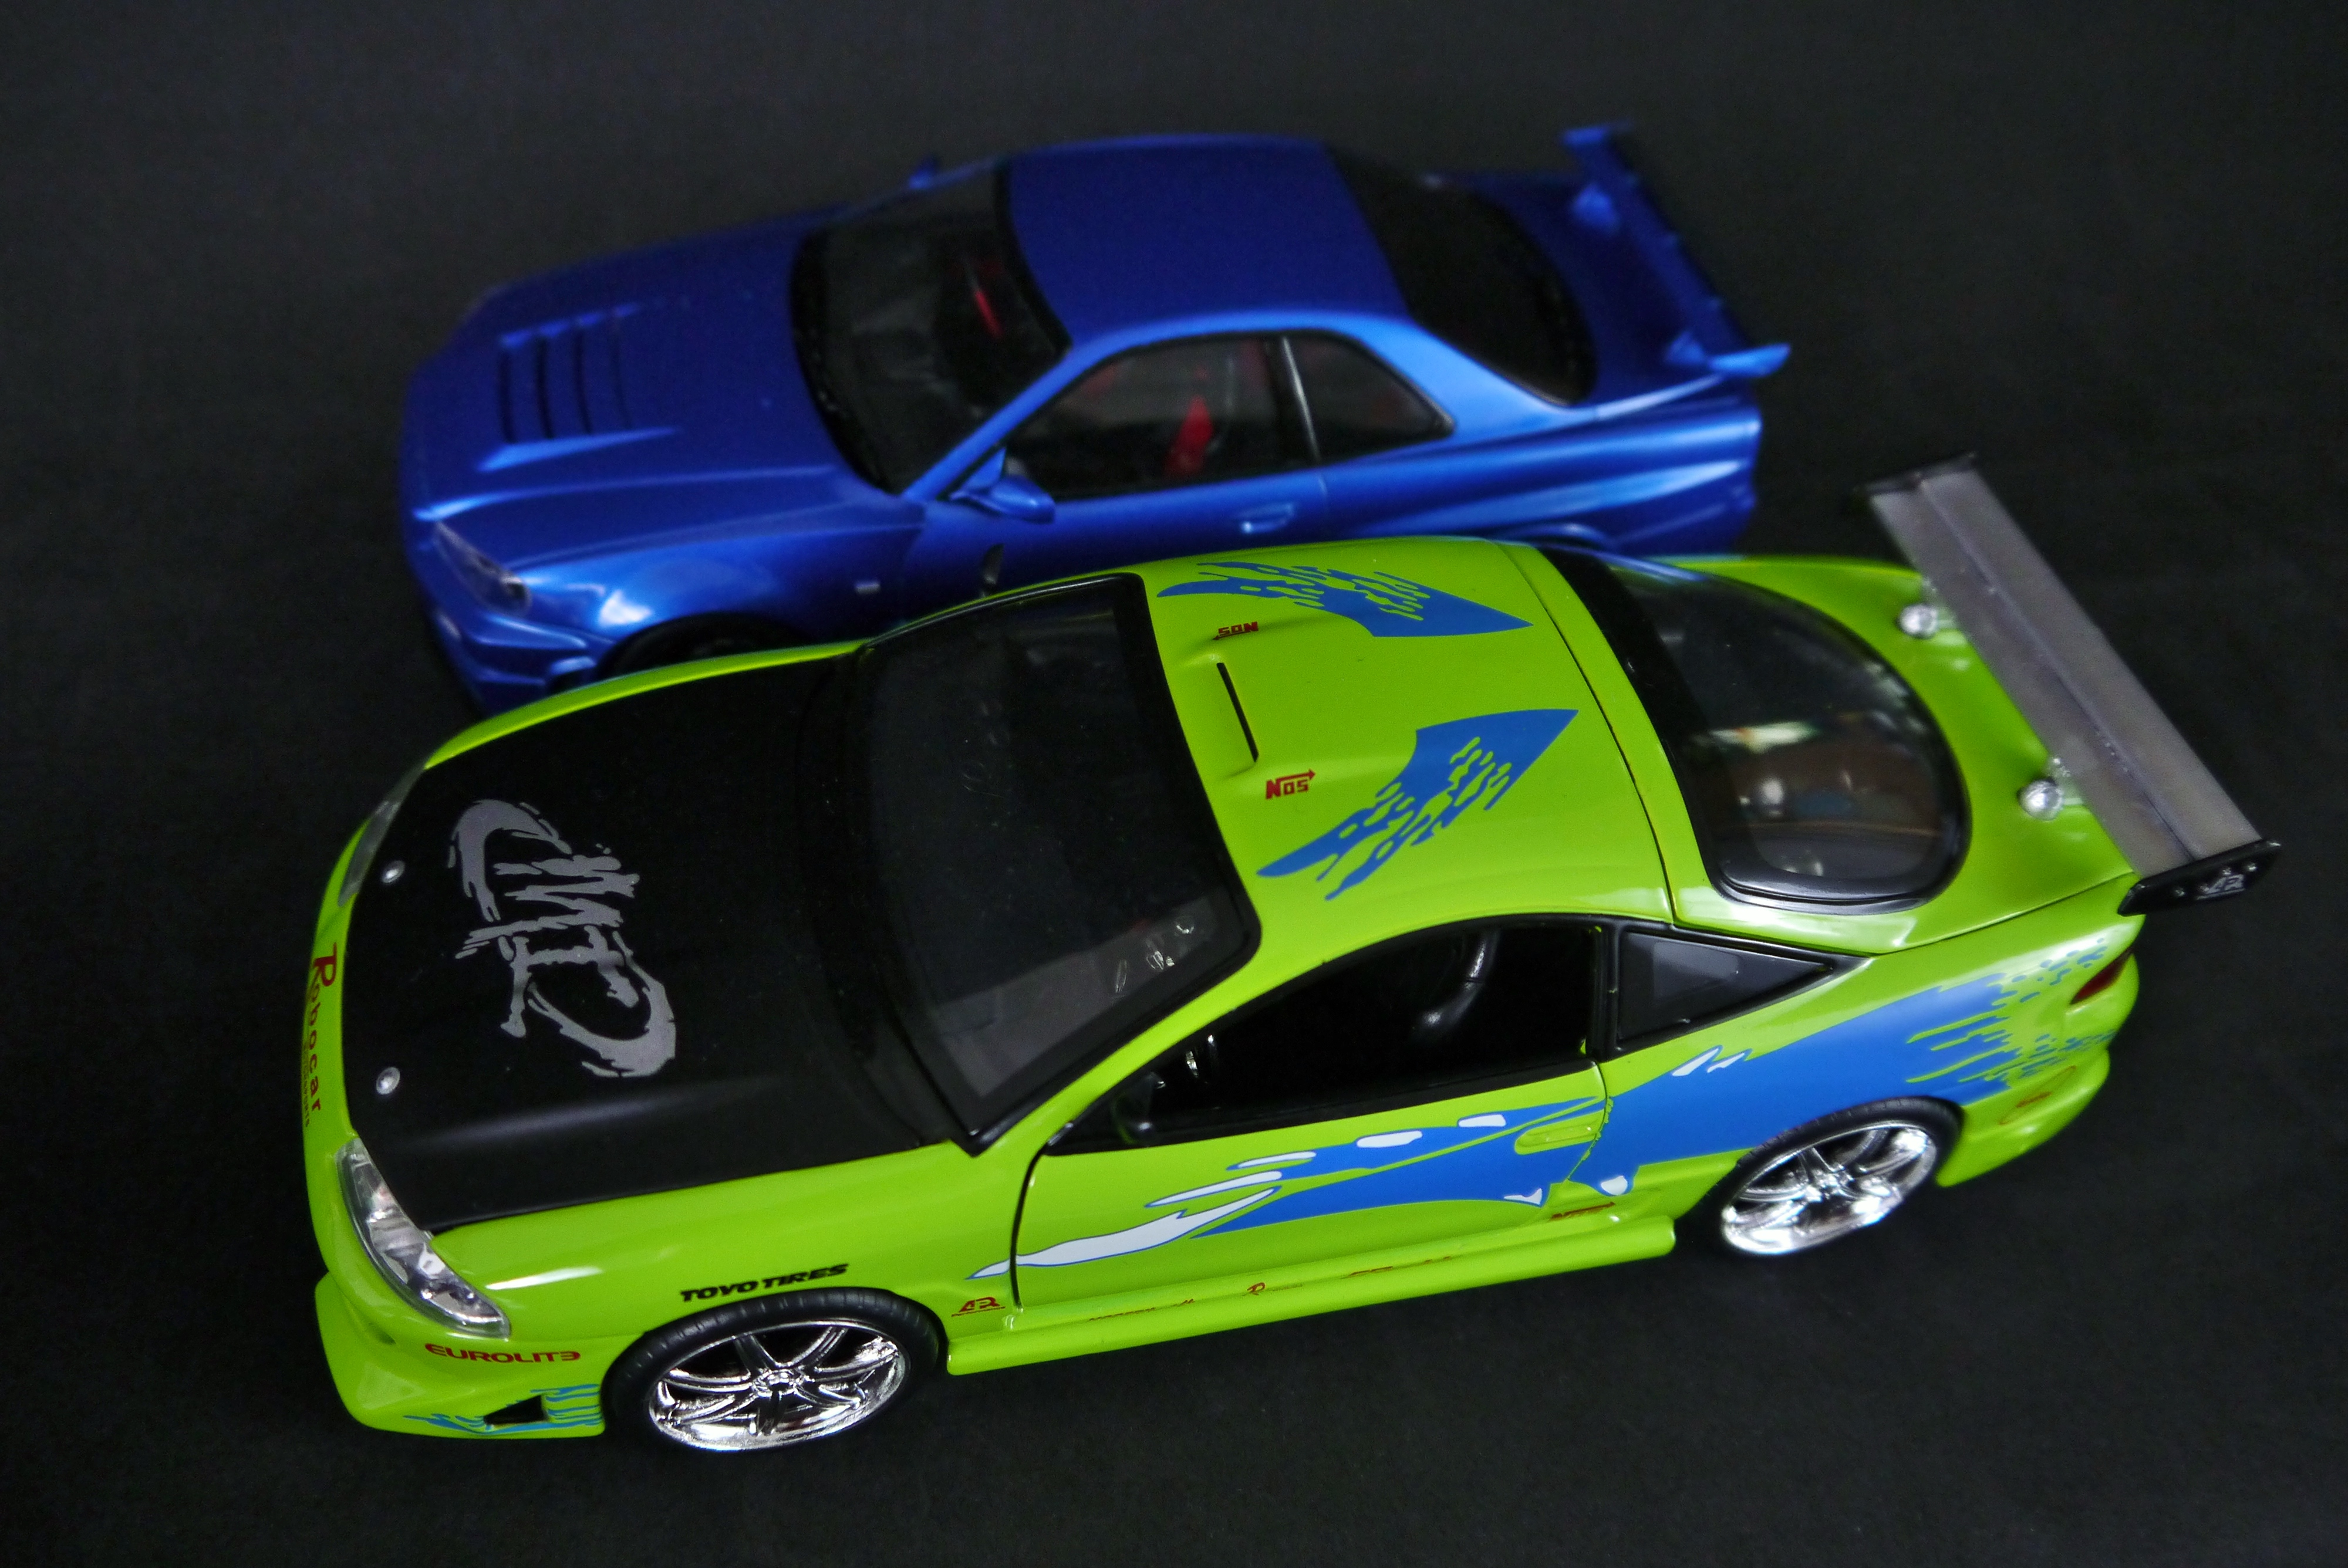 The Jada Eclipse Next To My Recently Built Tamiya GT R R34. The Sizing  Issue With The Jada Cars Only Really Started To Bother Me Once I Placed  These Two ...